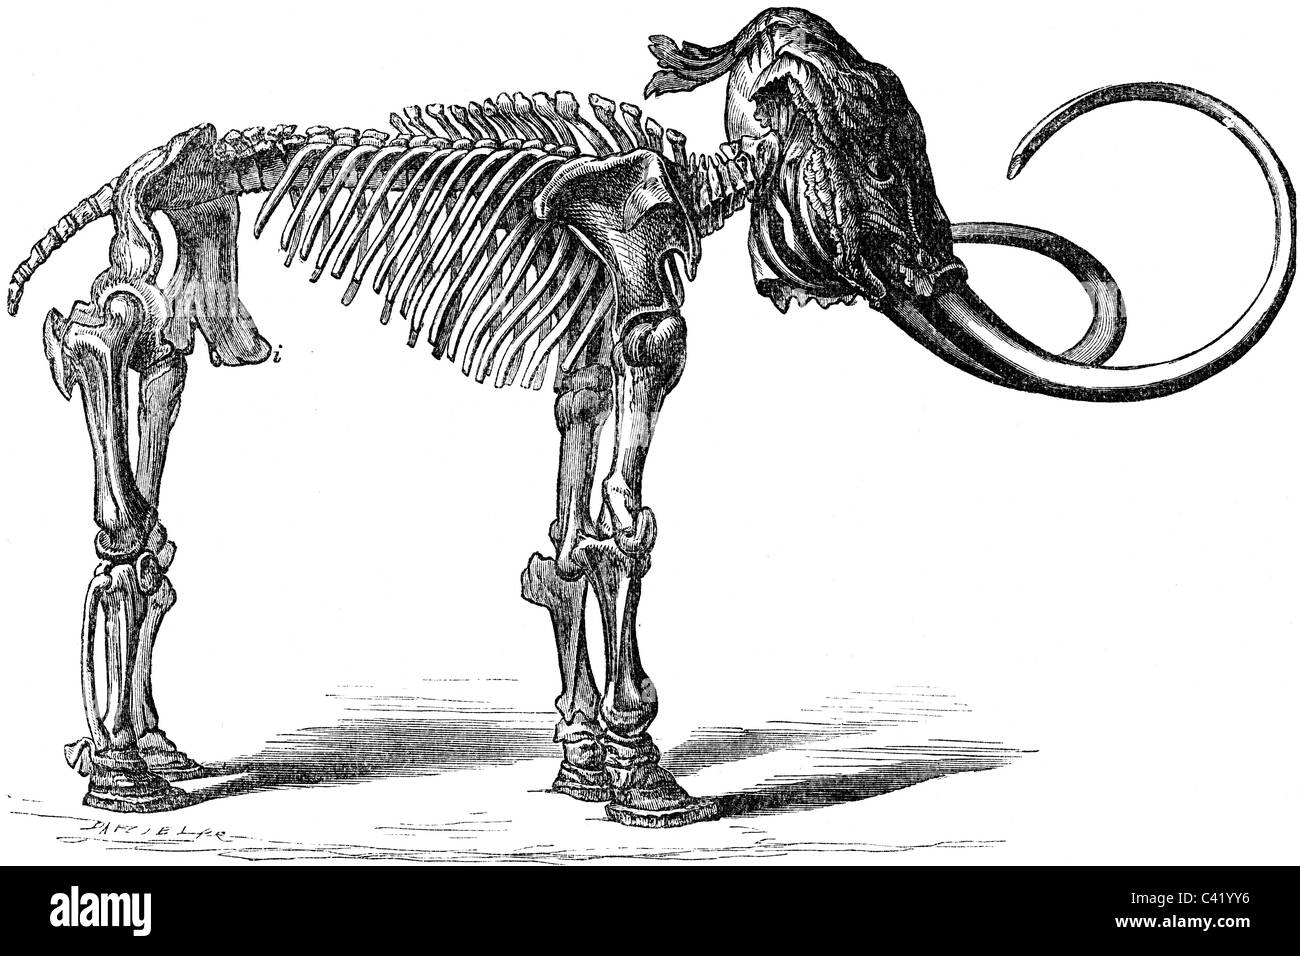 19th Century book illustration, taken from 9th edition (1875) of Encyclopaedia Britannica, of Mammoth Skeleton - Stock Image